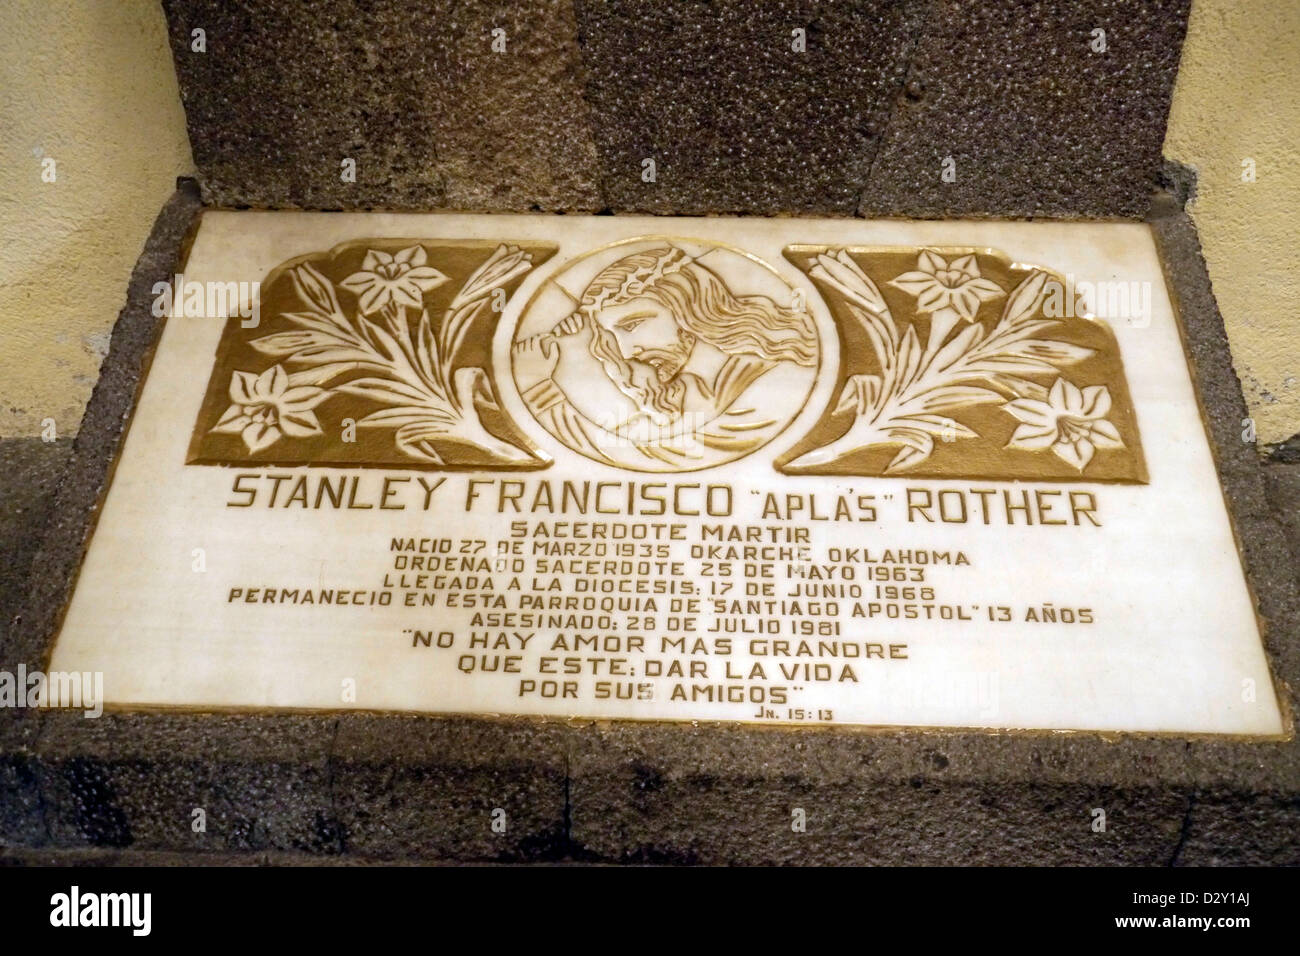 catholic church memorium slayed martyr fr stanley rother santiago latin america central 20121106 atitlan - Stock Image